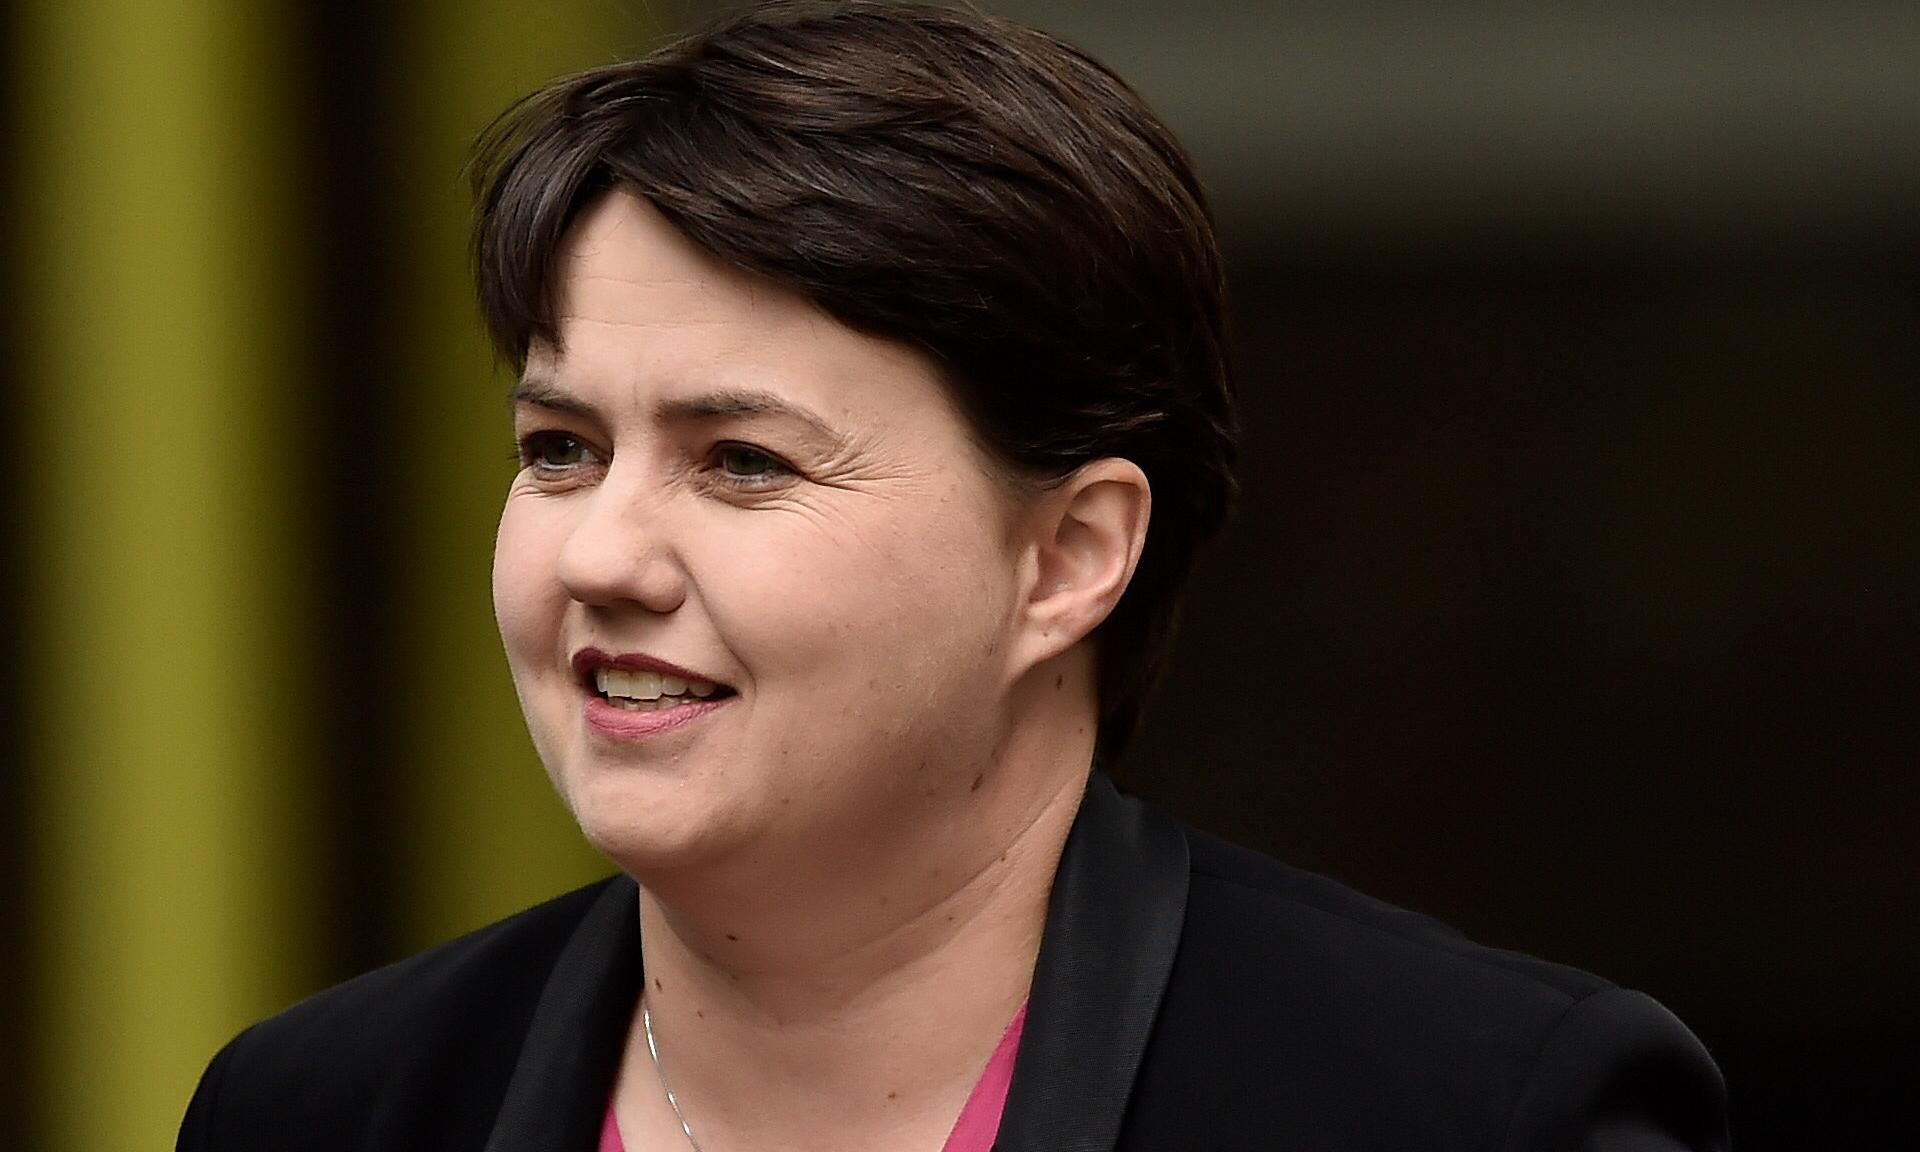 Ruth Davidson praised after talking openly about mental health issues